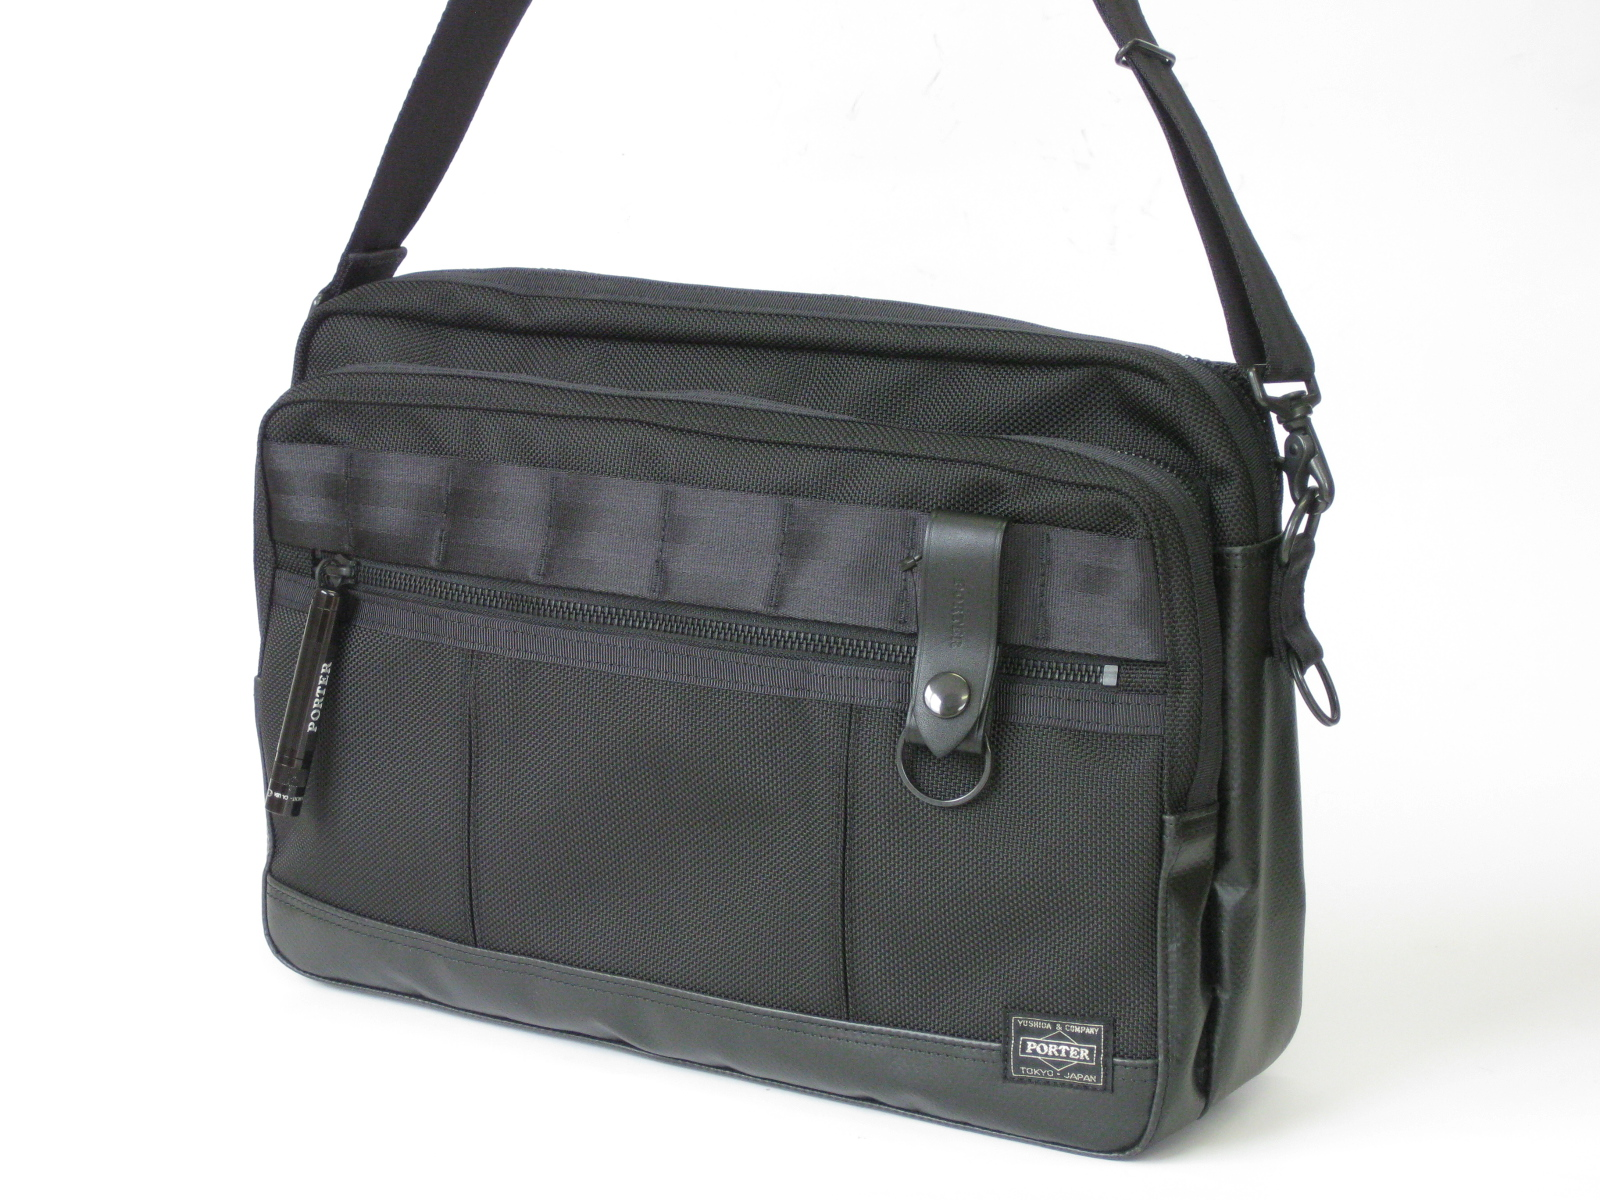 (Only in JAPAN.) 吉田カバン PORTER ポーター ヒート ショルダーバッグ 703-07969 (This product is not for overseas customer.)